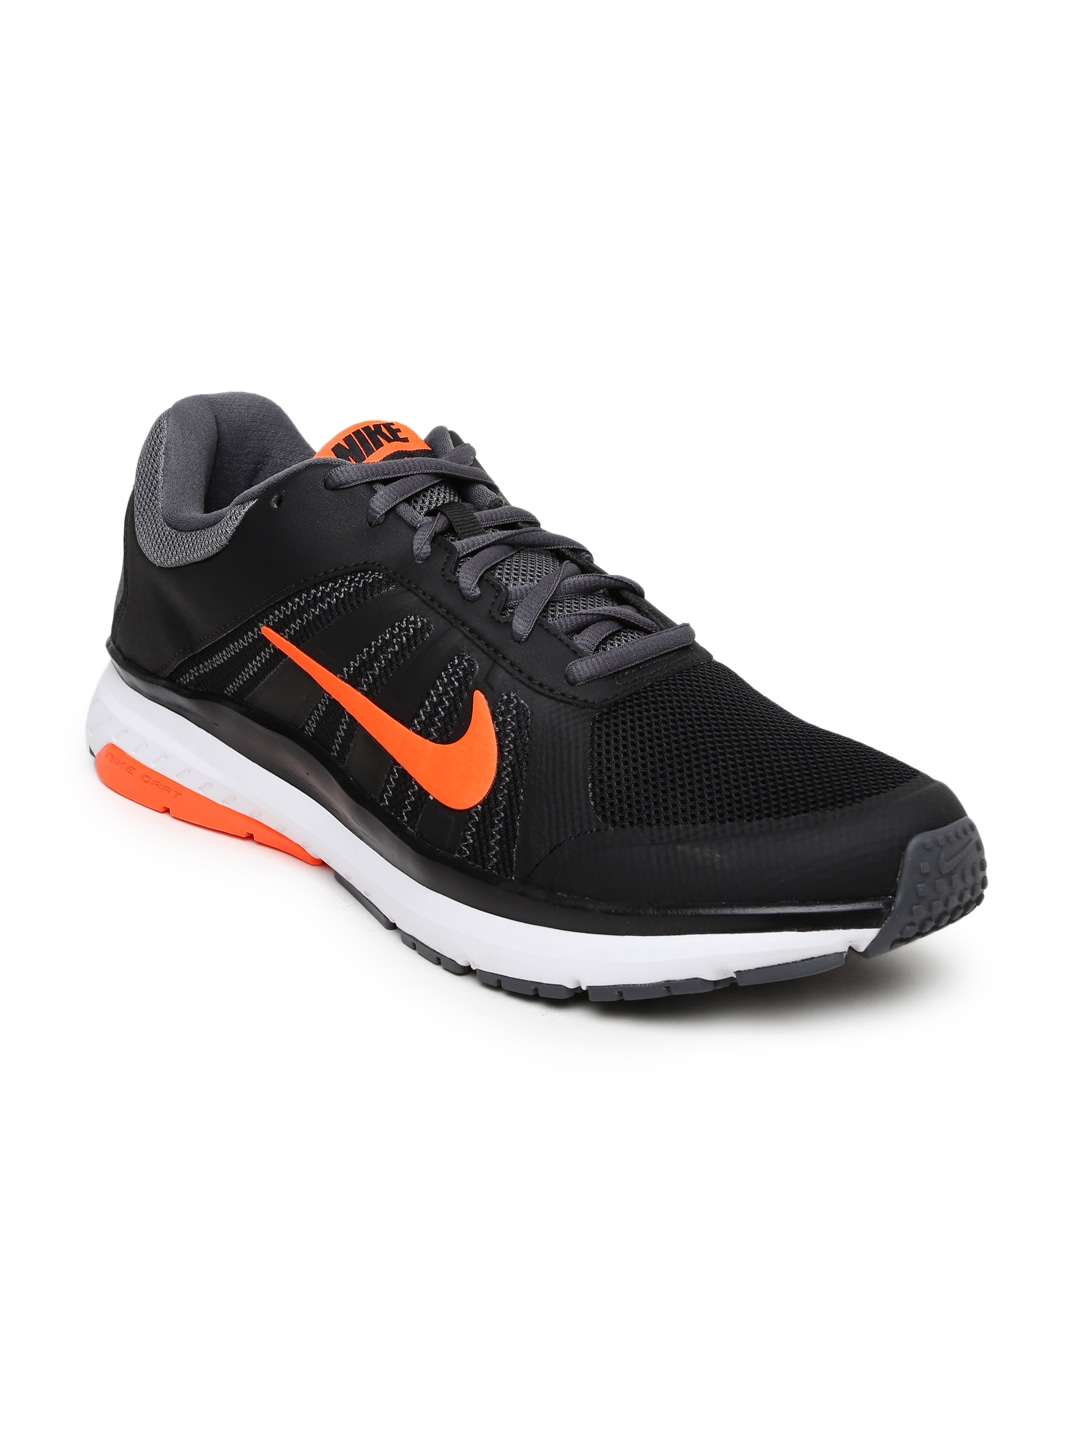 nike shoes online buy nike shoes for men women online in nike men black dart 12 msl running shoes